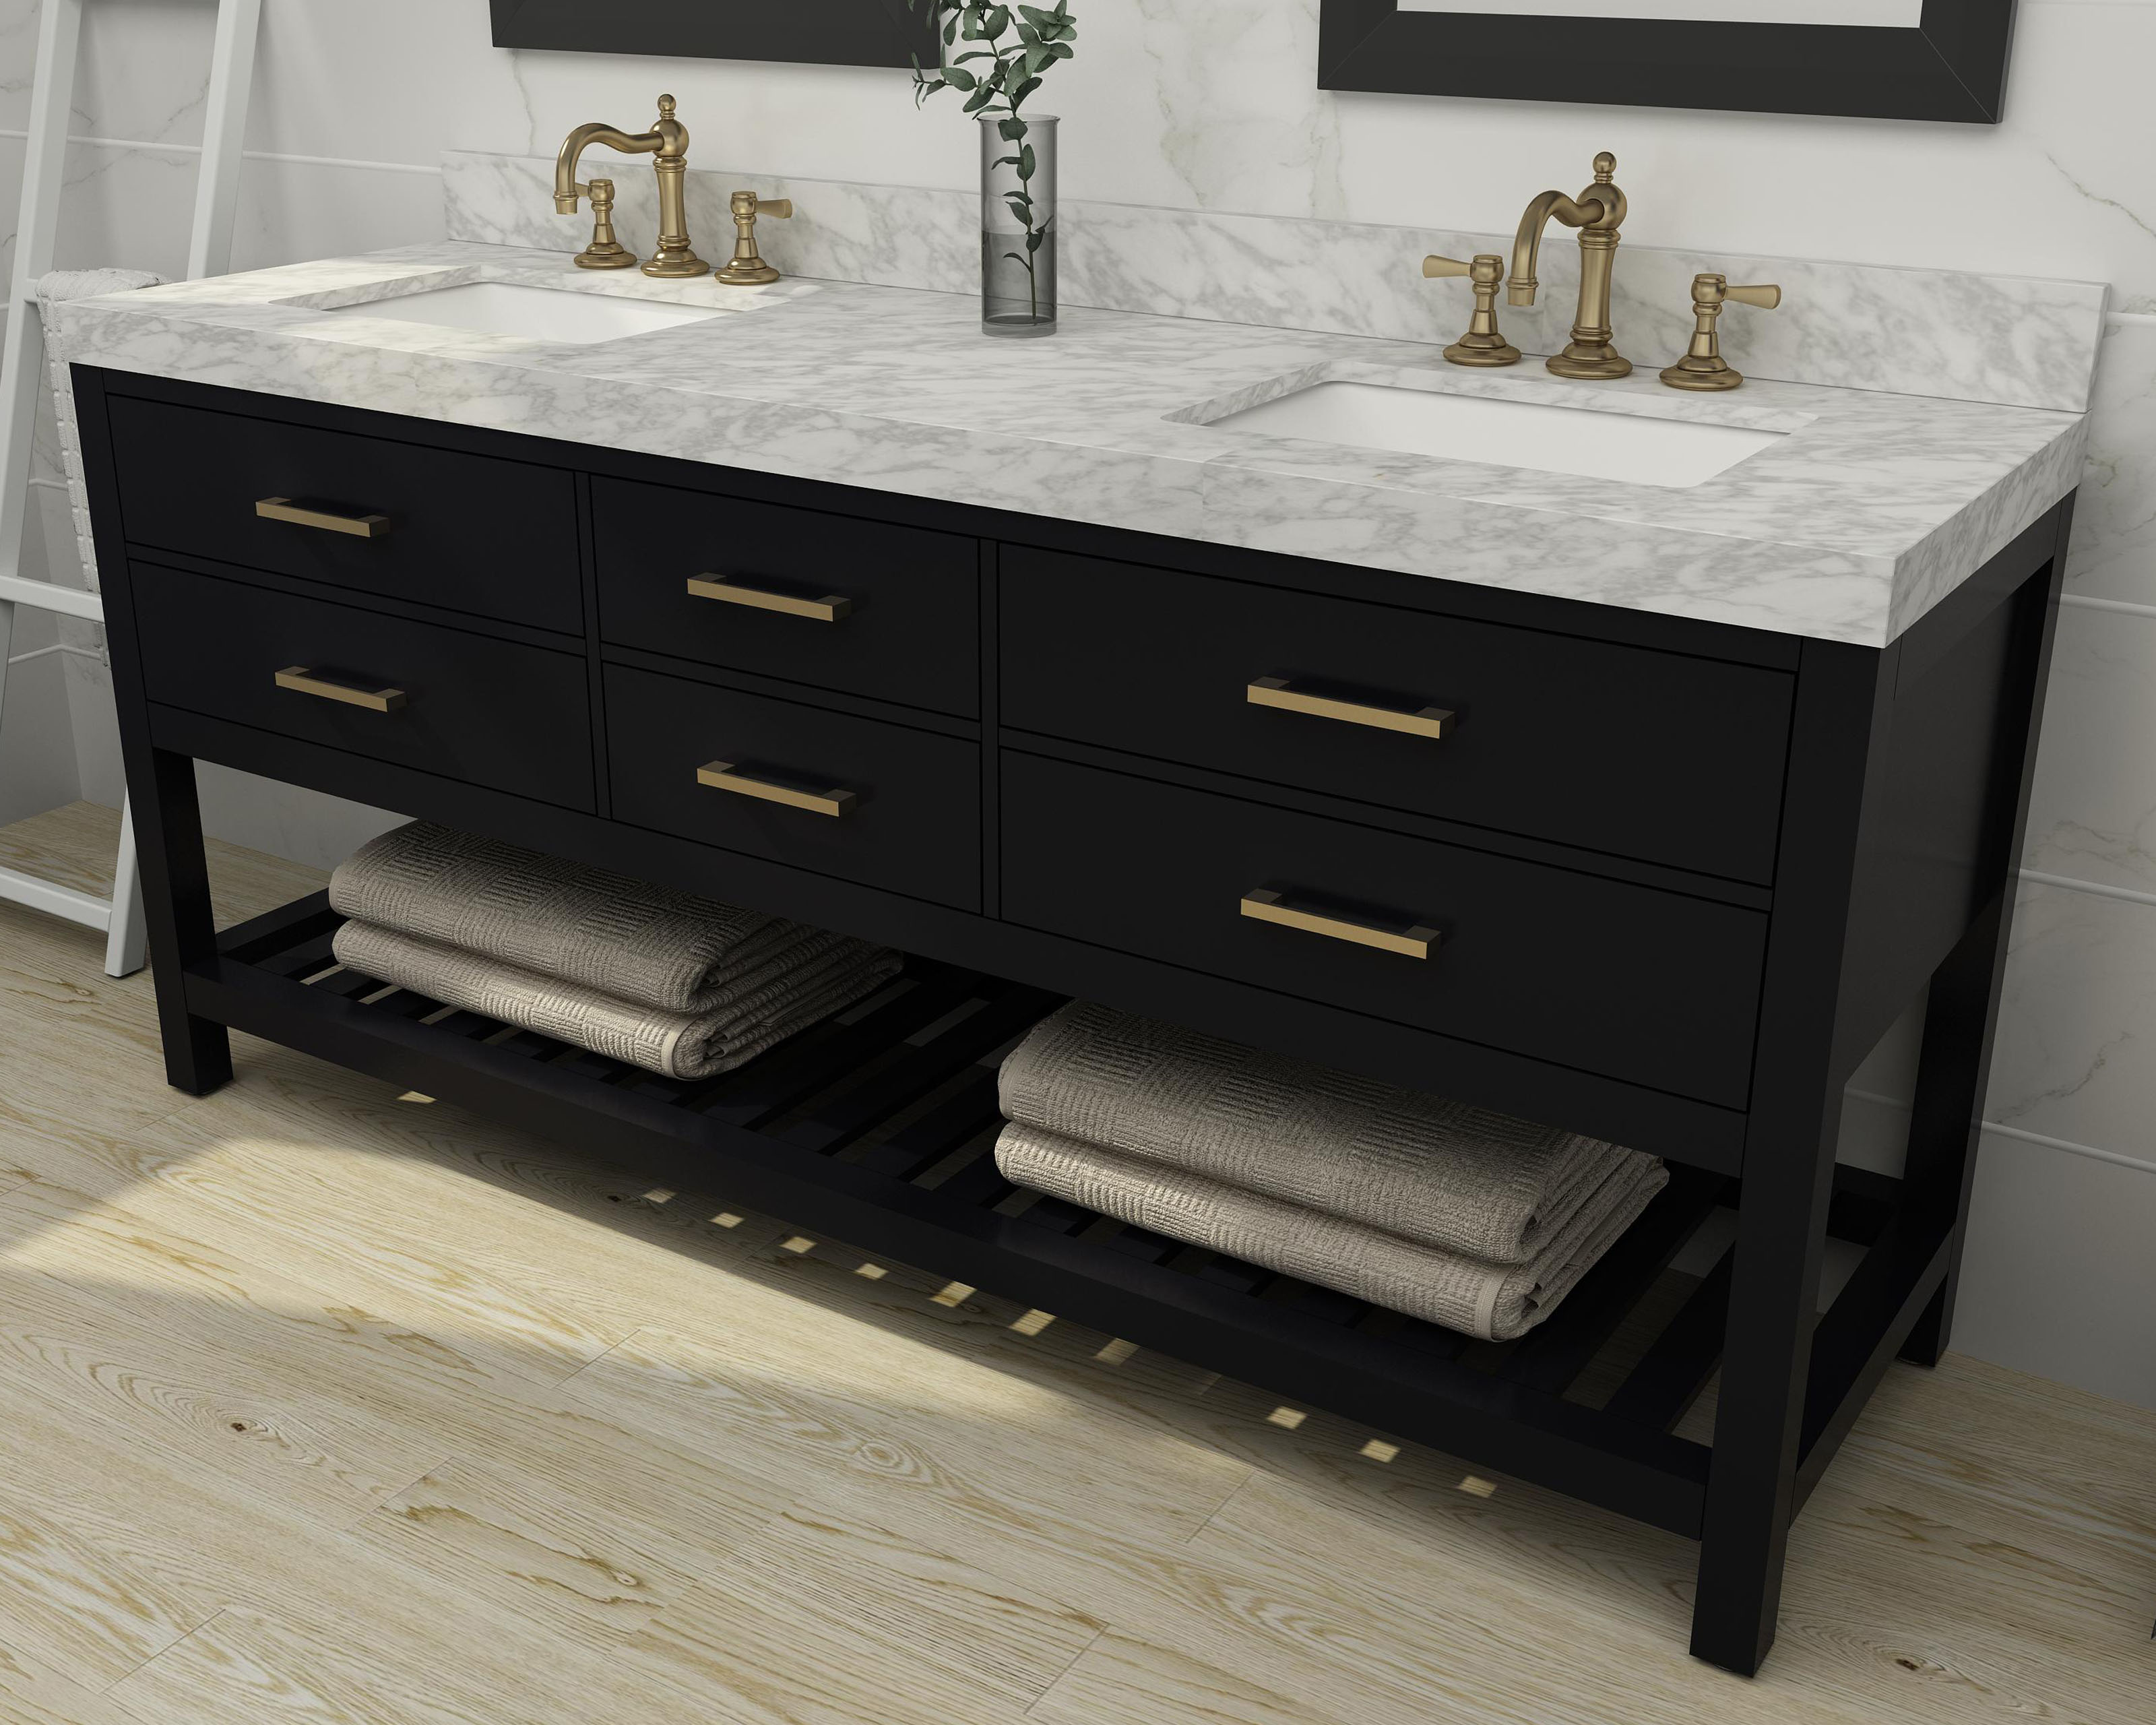 "72"" Double Sink Bath Vanity Set in Black Onyx with Italian Carrara White Marble Vanity top and White Undermount Basin with Gold Hardware"